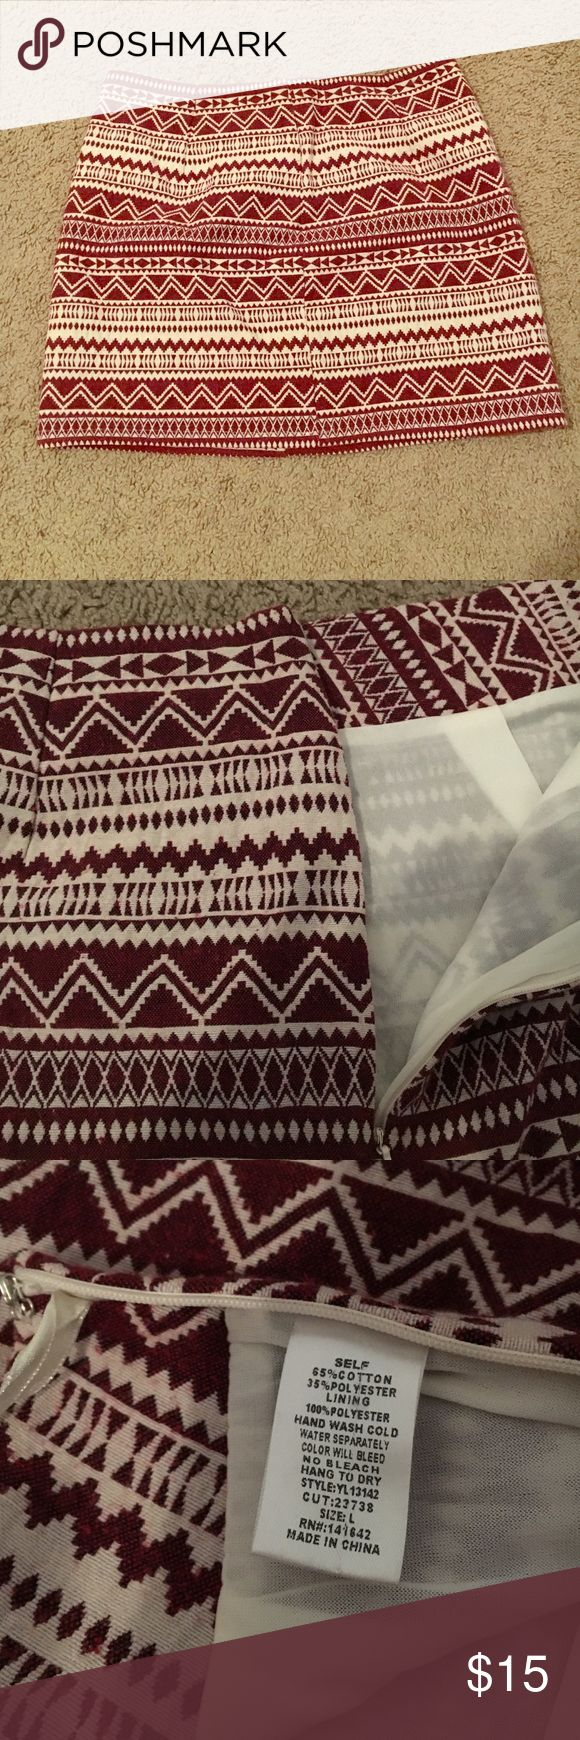 Maroon tribal print skirt Maroon tribal print skirt. High waisted. Zips up the side. True to size. Perfect for game days and nights out! Ya Skirts Mini